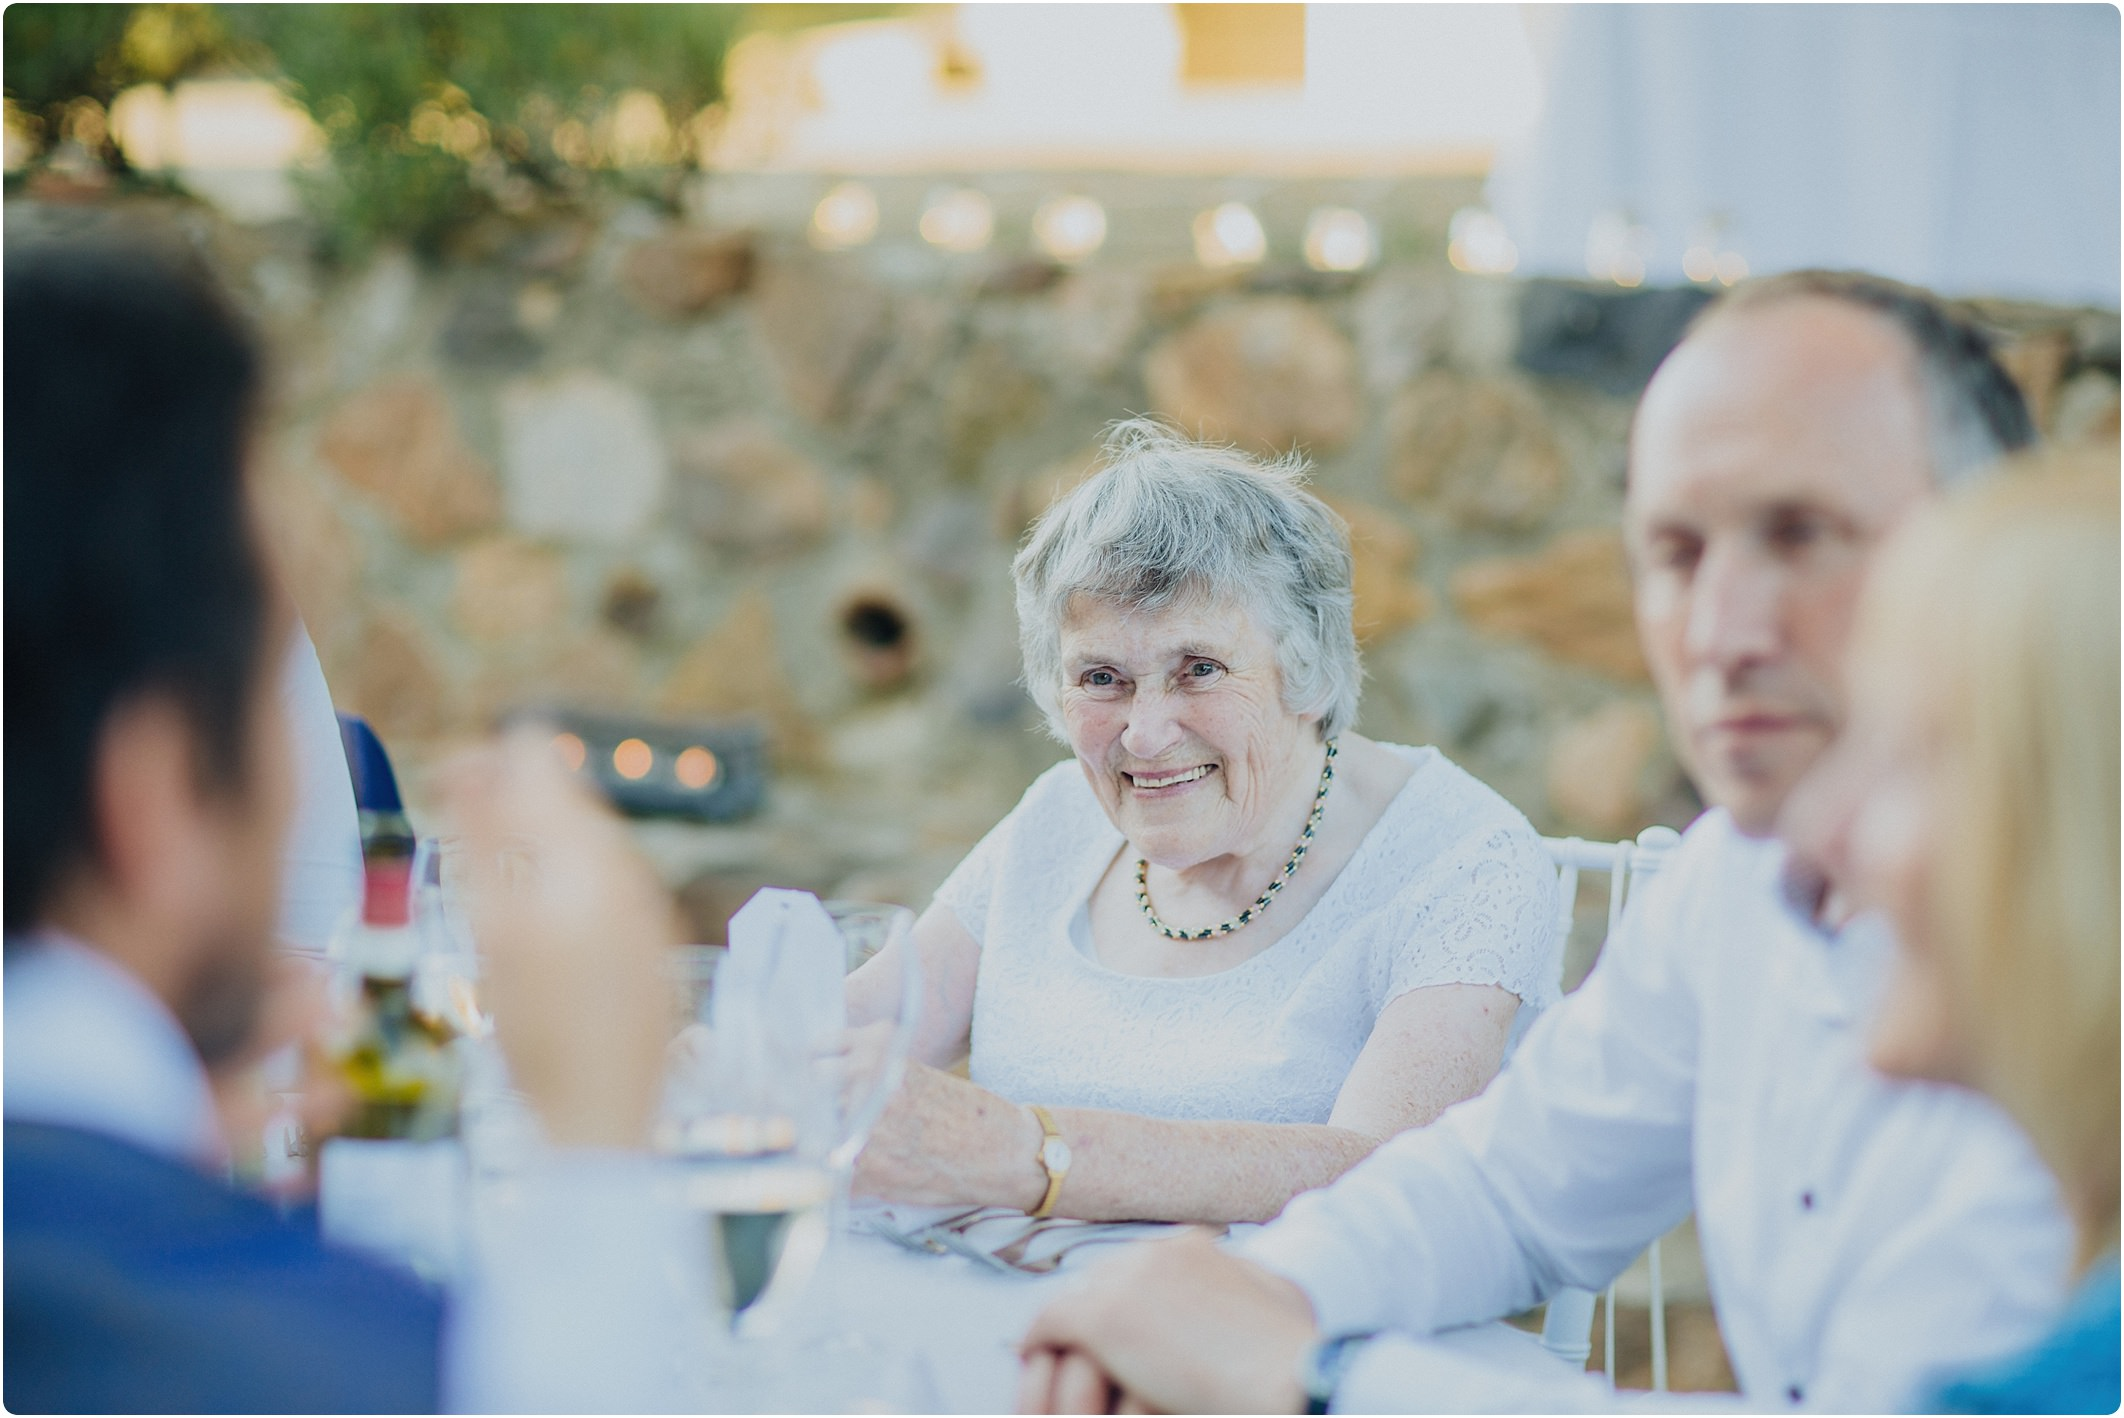 nan at a villa podernovo wedding